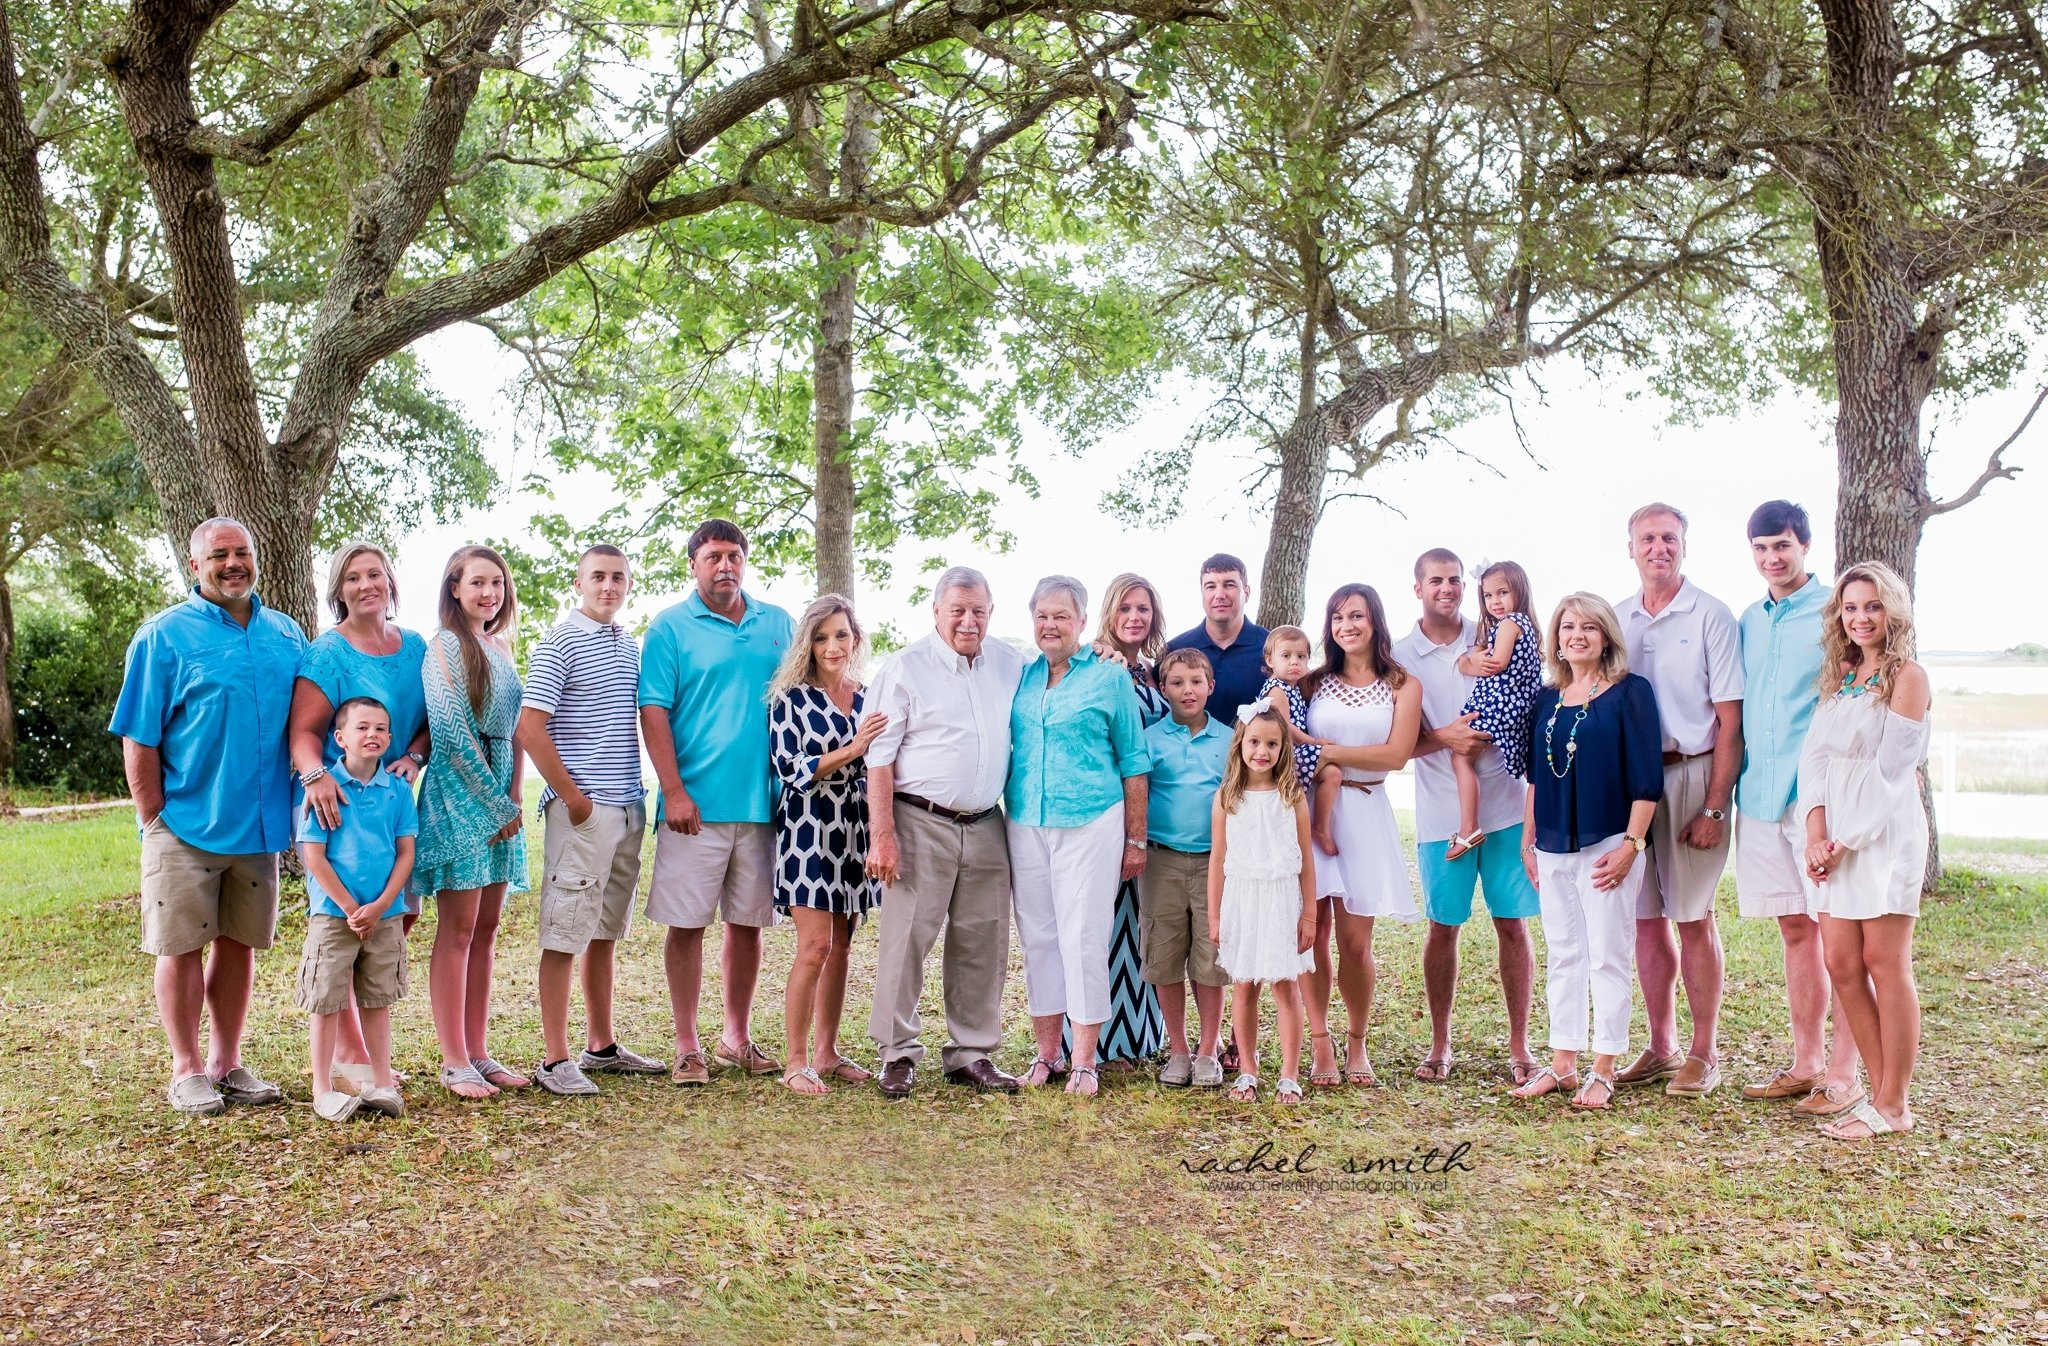 10 Awesome Large Family Photo Clothing Ideas love the use of color but maybe not so much blue extended family 2021